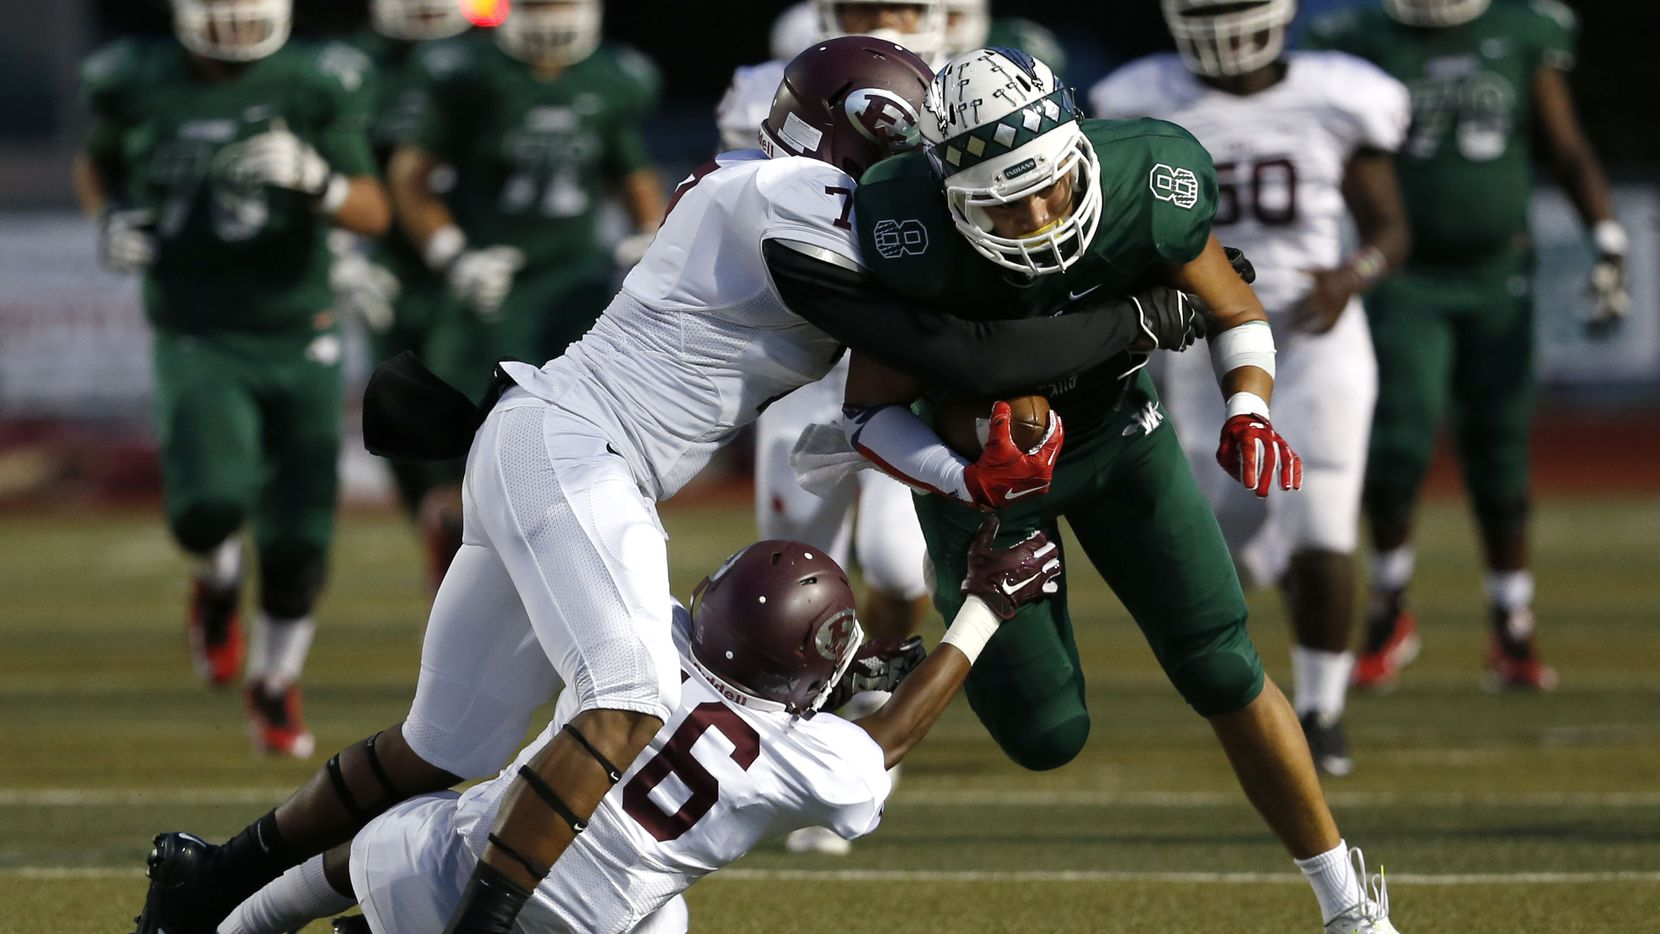 Ennis' Tori Williams (7) and Braylon Davis (16) tackle Waxahachie tight end Devan Brady (8) in the first quarter of the game between Waxahachie High School and Ennis High School at Lumpkins Stadium in Waxahachie, Texas on Sept. 11, 2015.